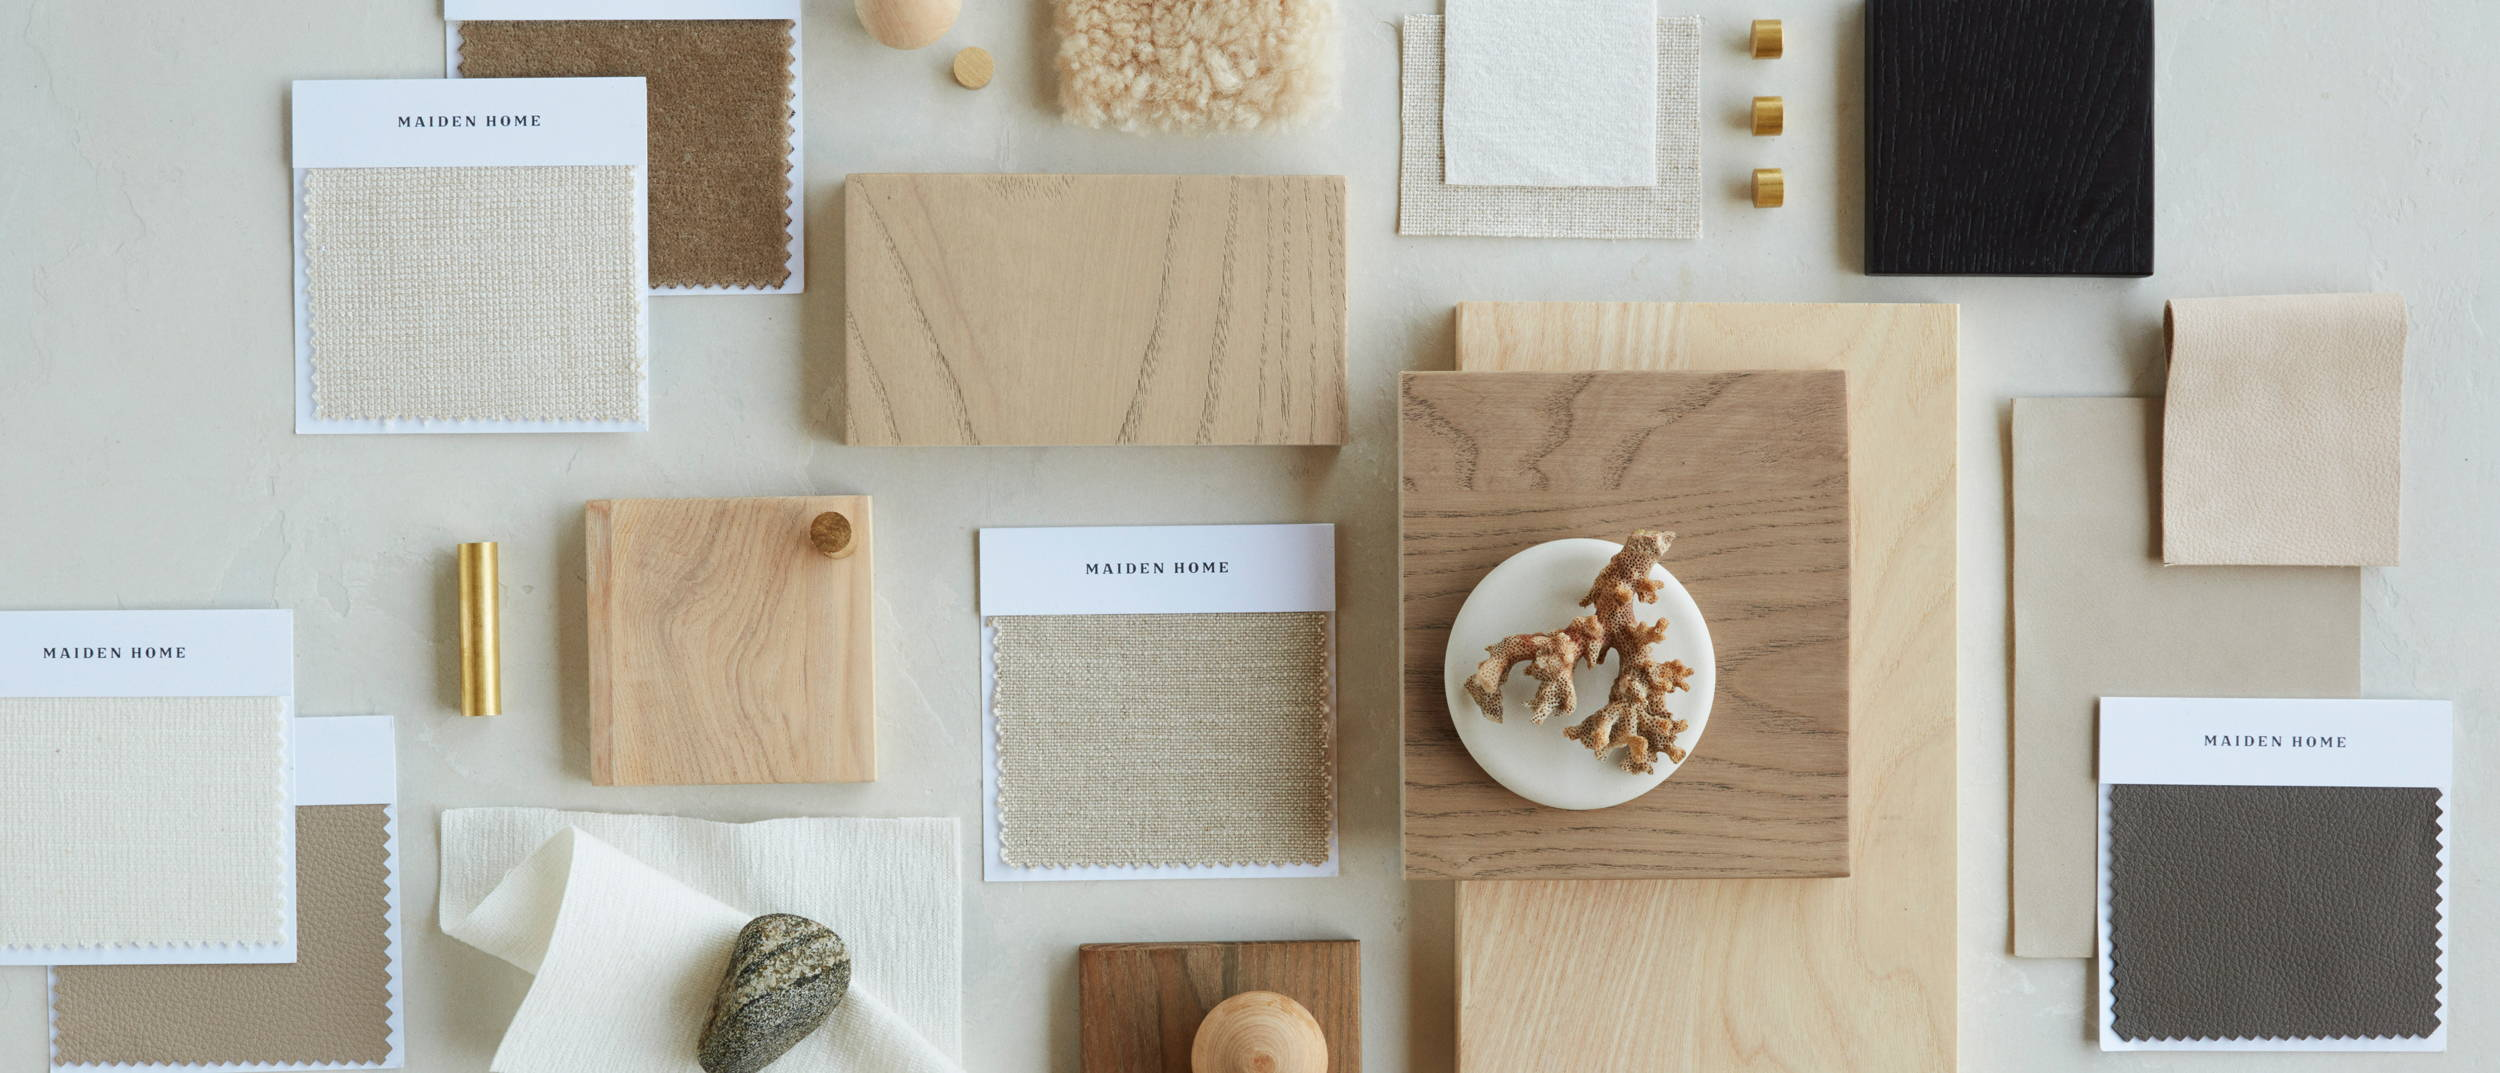 A laydown of various materials and swatches, including fabrics, leathers, woods, and brass.